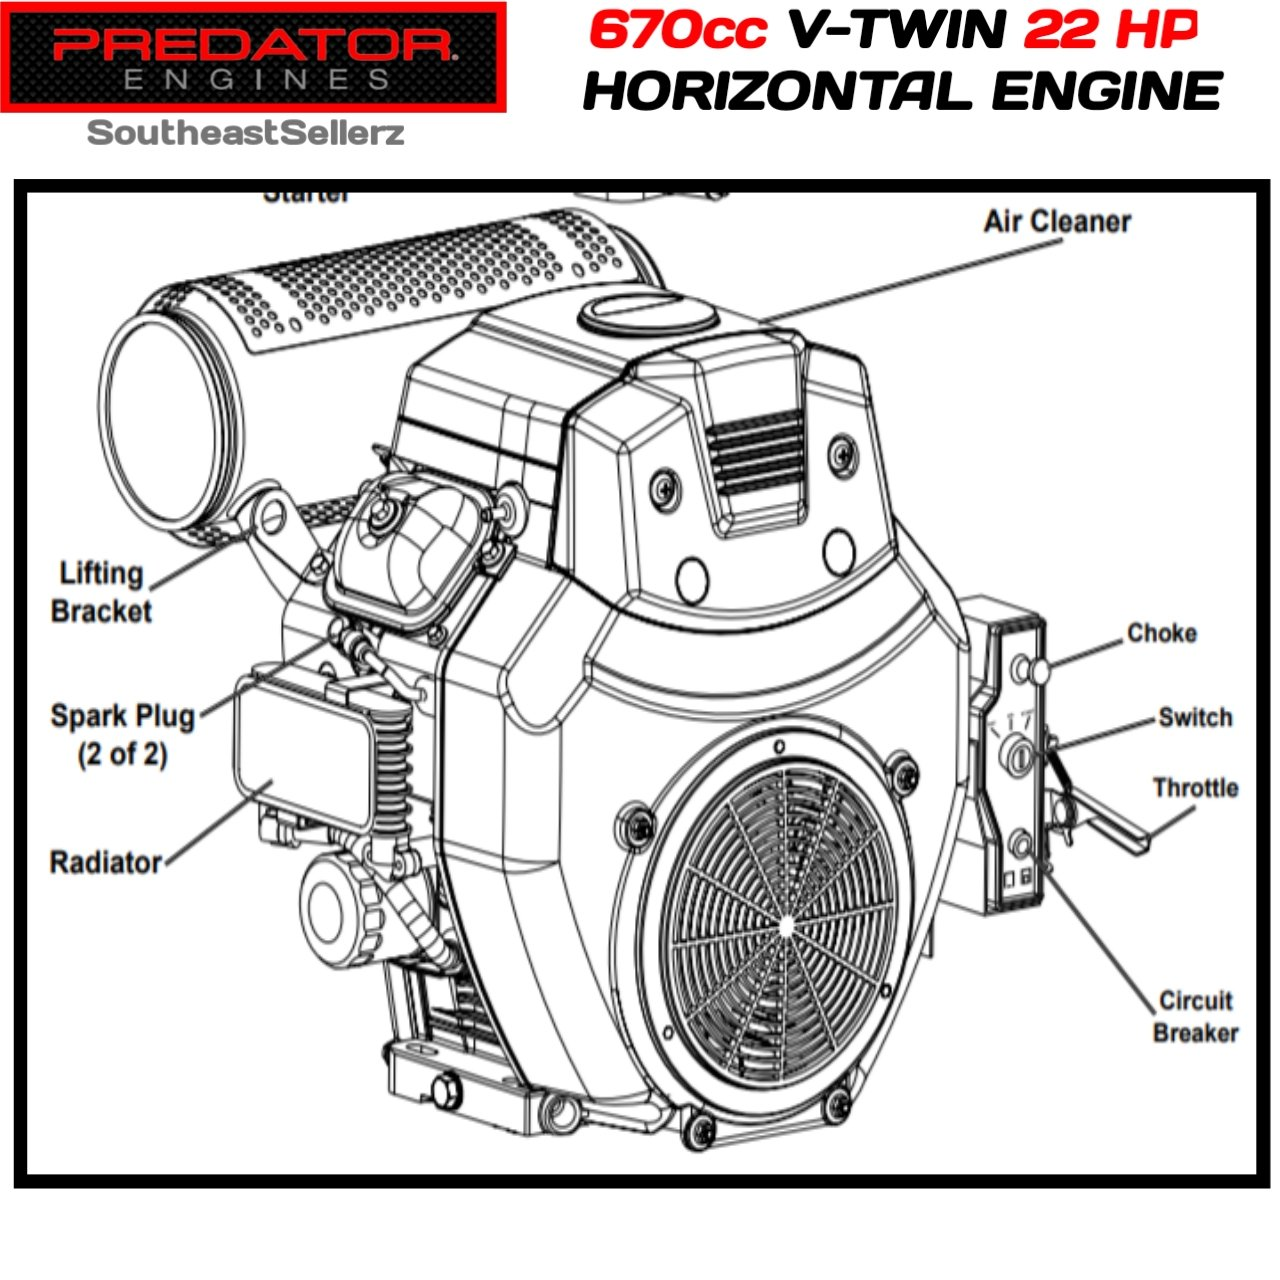 17 Hp Kawasaki Engine Parts Diagram Reinvent Your Wiring 14 4 Stroke Cars Largest Database U2022 Rh Swaglabs Co Breakdown Fh500v